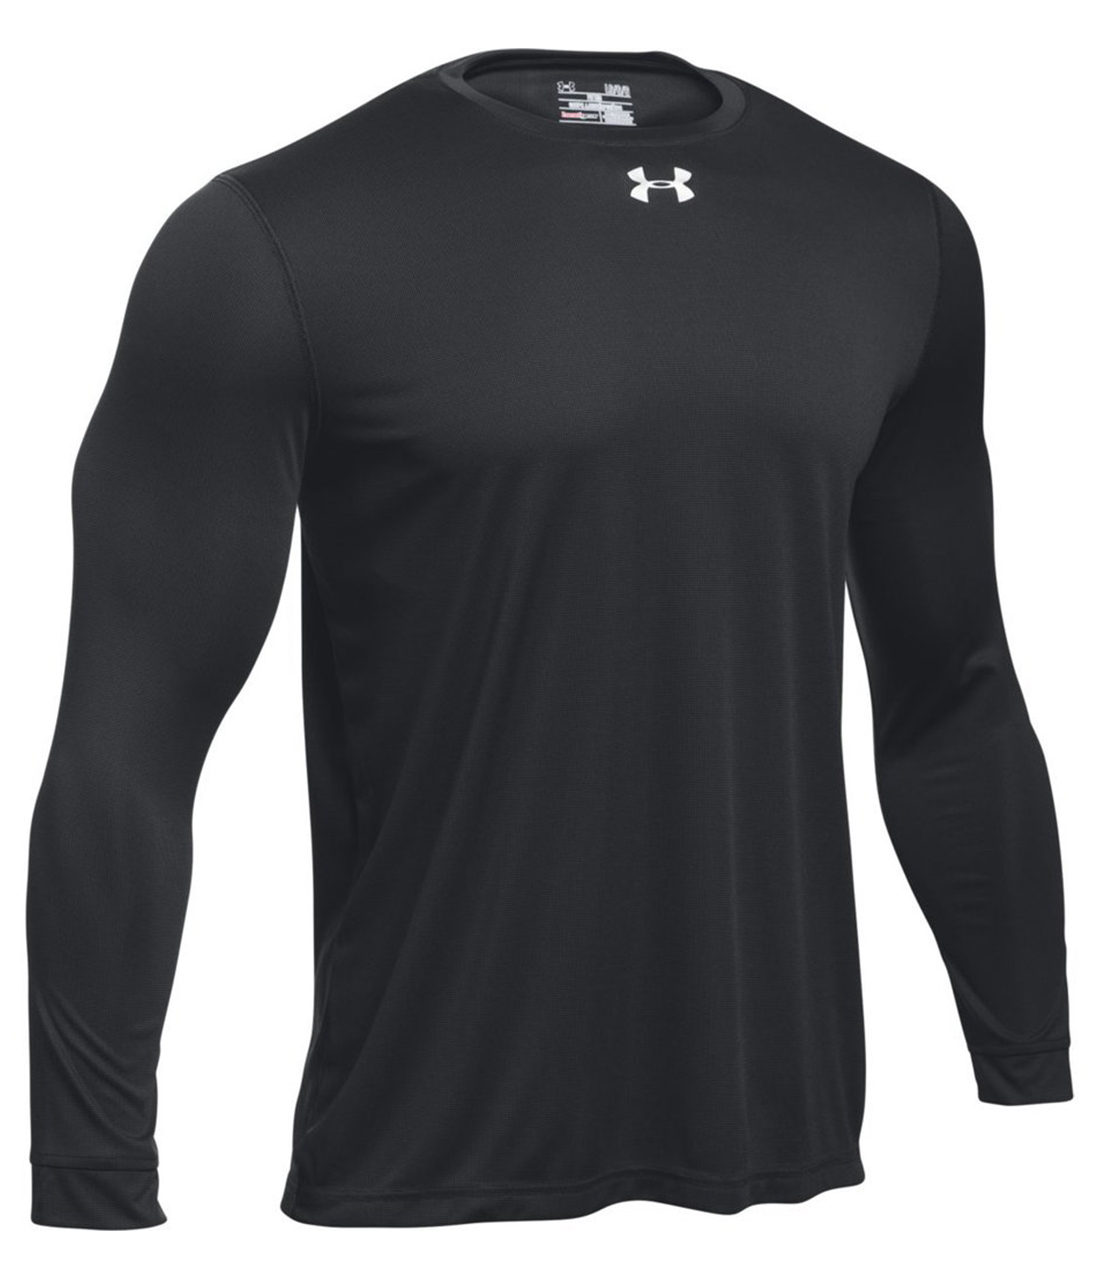 Picture of UNDER ARMOUR Men's Long Sleeve Locker T-Shirt